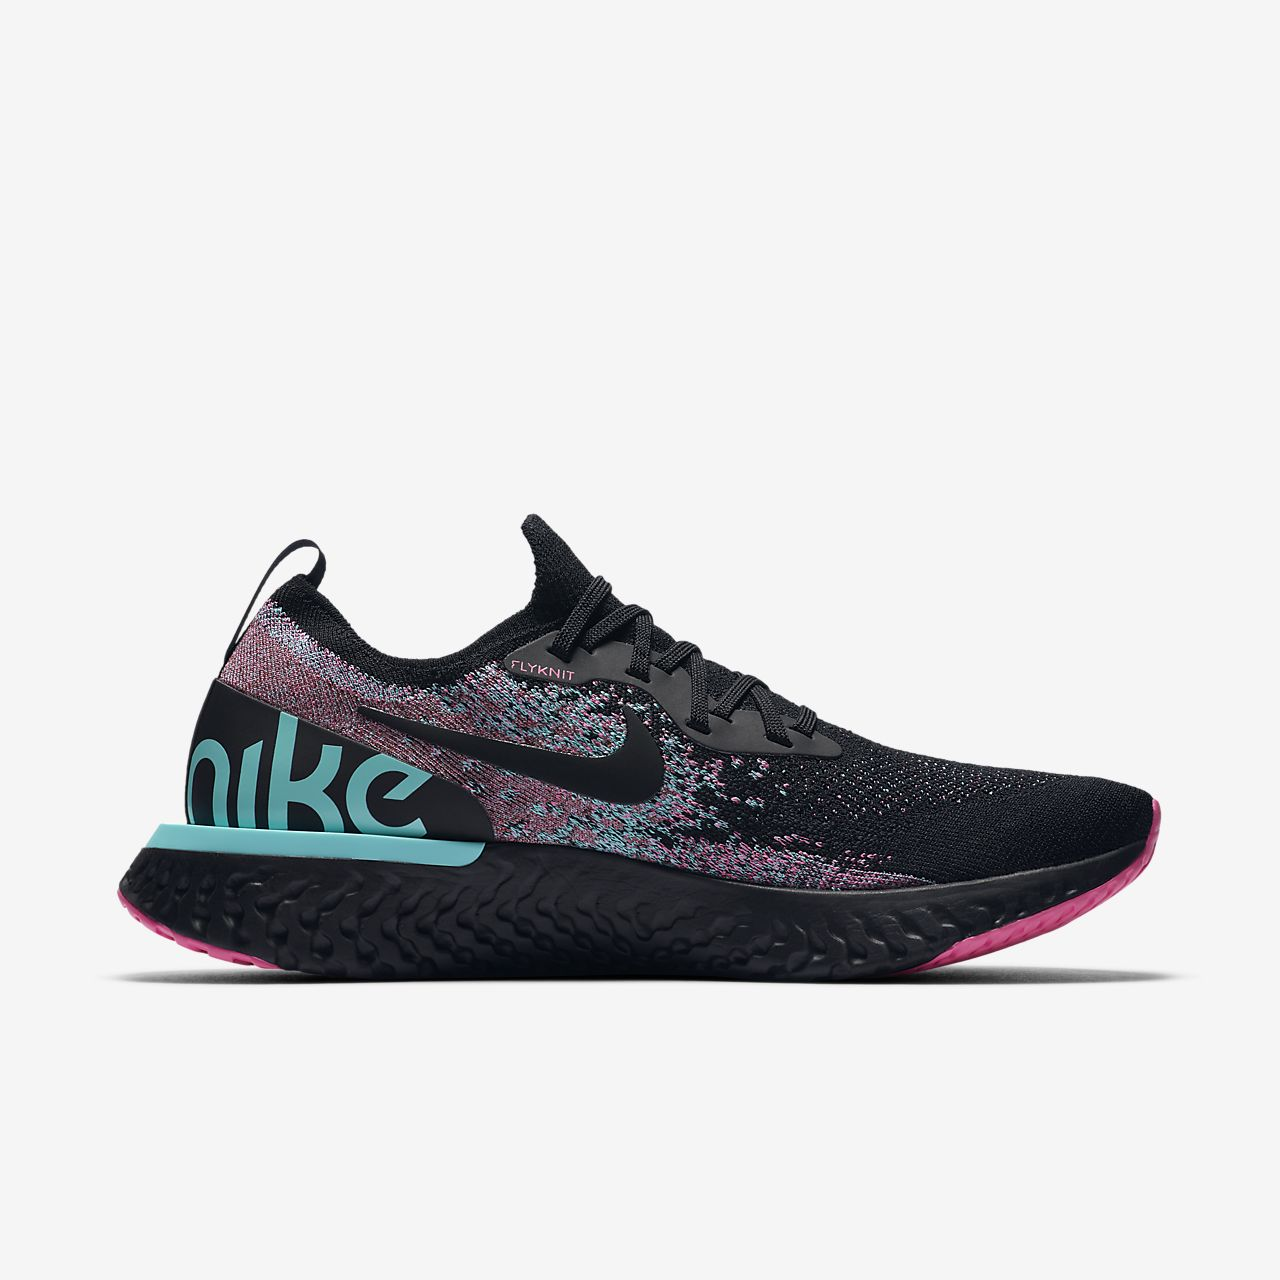 f1572699d494 Nike Epic React Flyknit 1 Men s Running Shoe. Nike.com